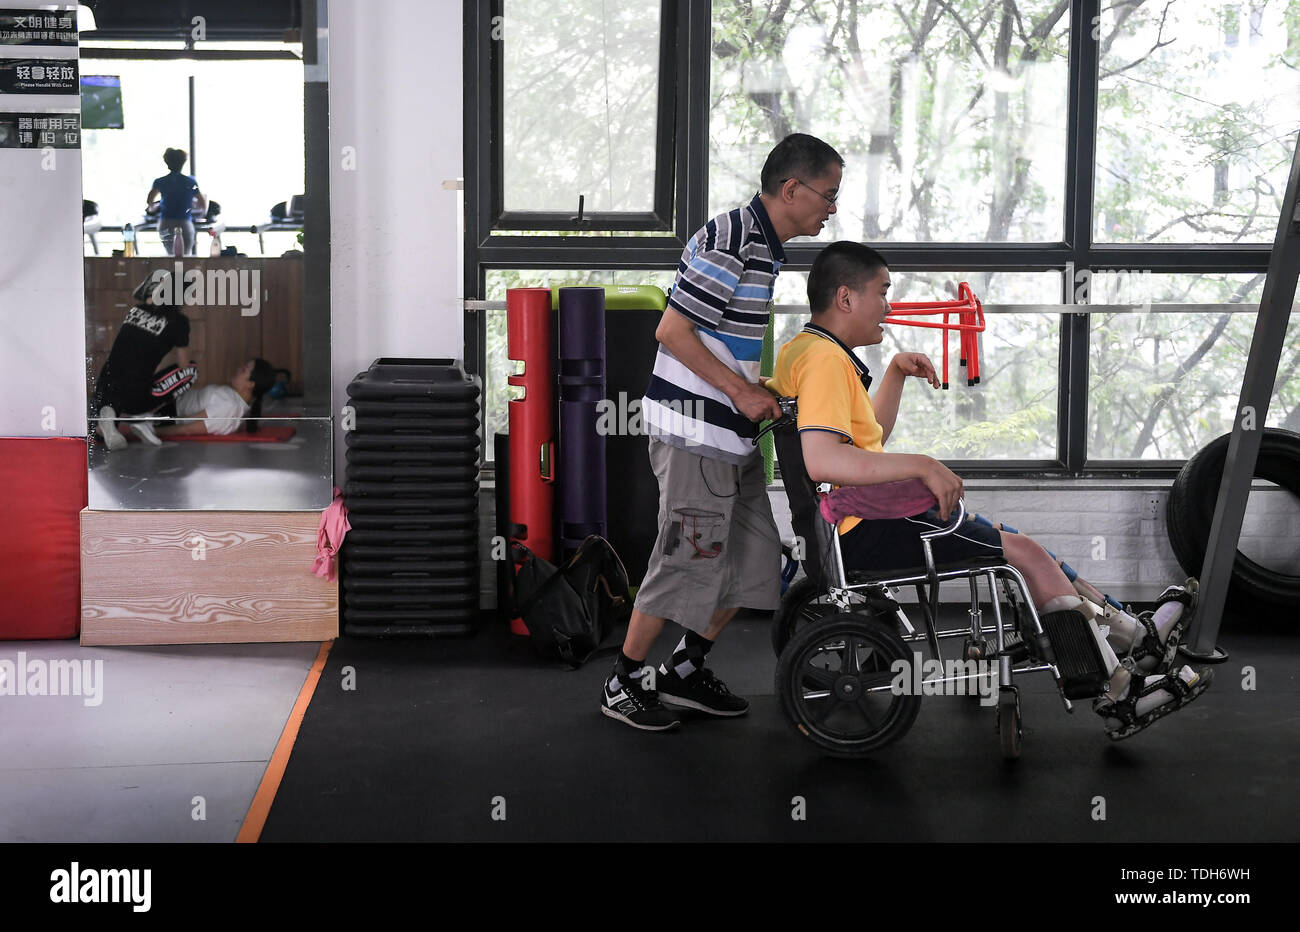 (190616) -- CHENGDU, June 16, 2019 (Xinhua) -- Guan Yongkang and his son prepare to pratice at the gym in Jinjiang District, Chengdu City, southwest China's Sichuan Province, June 11, 2019. Sun Hongwei, the son of 59-year-old Guan Yongkang, was born with cerebral palsy in 1995 and suffered from amyotrophy.  Sun ever received professional rehabilitation training in training courses organized by Chengdu Qingyang Federation of Disabled Persons in 2004. Later he stopped the course because of overage. In 2015, his father Guan decided to take him to practice in the gym. After a period of searching,  - Stock Image